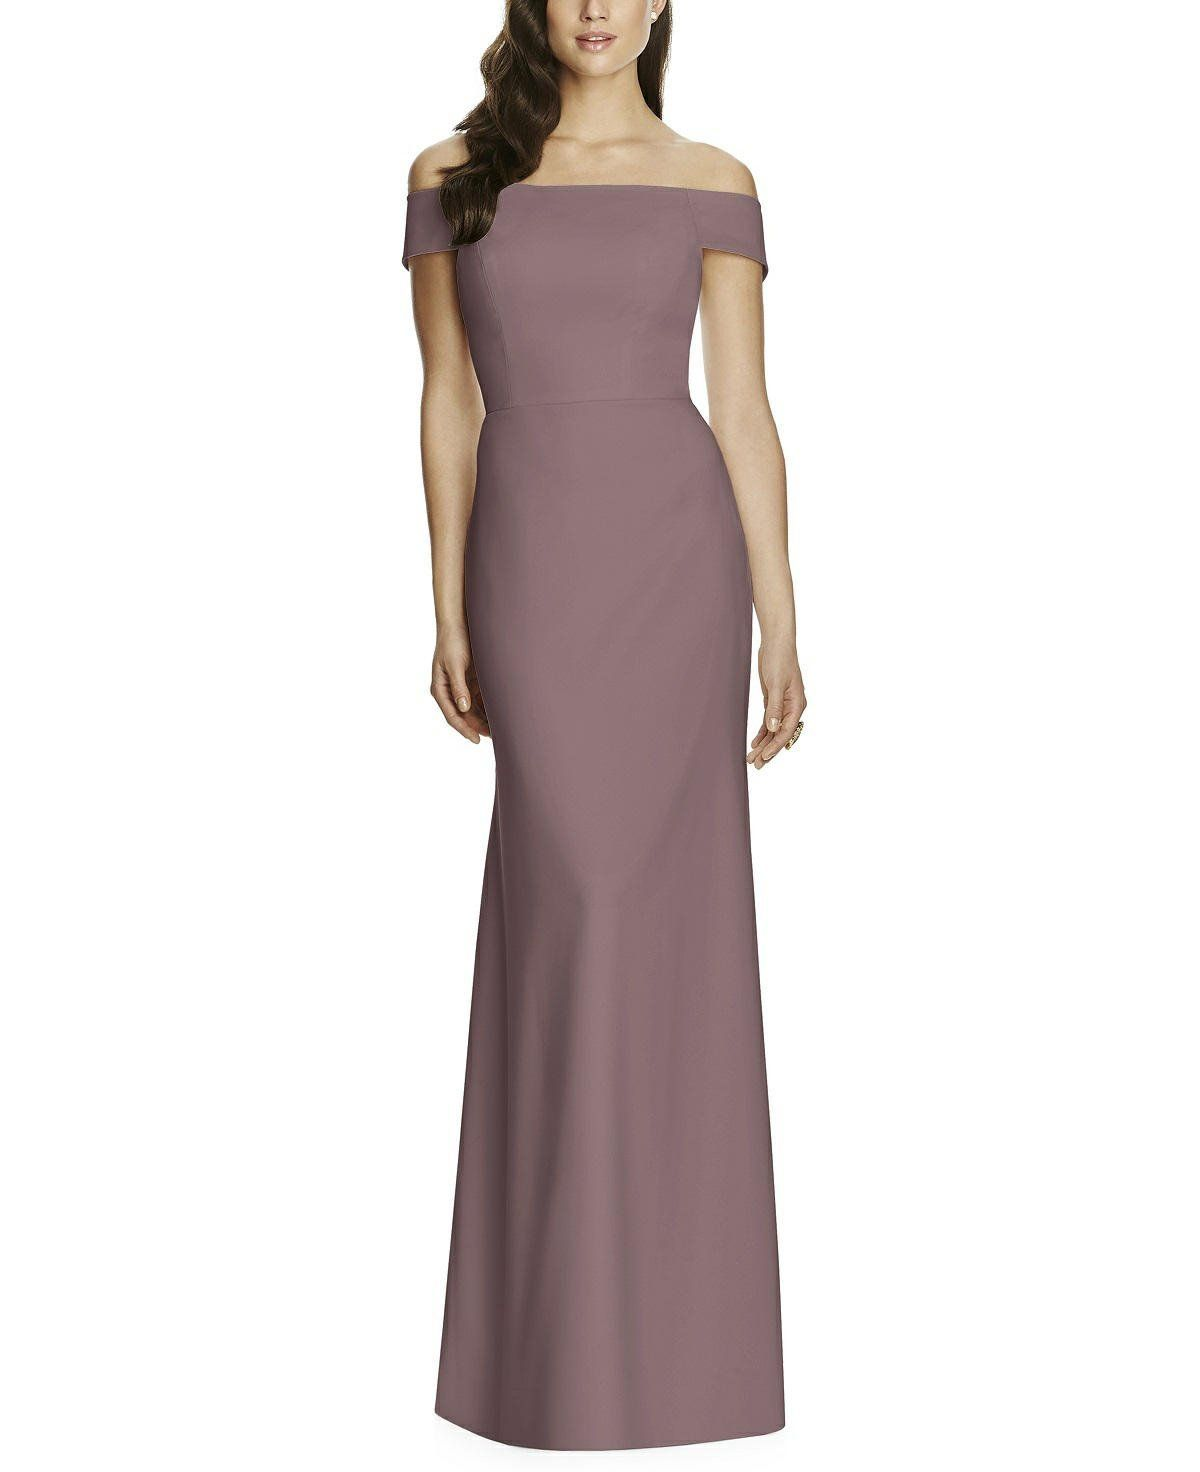 6284a327e4 Dessy Collection Style 2987 in 2019